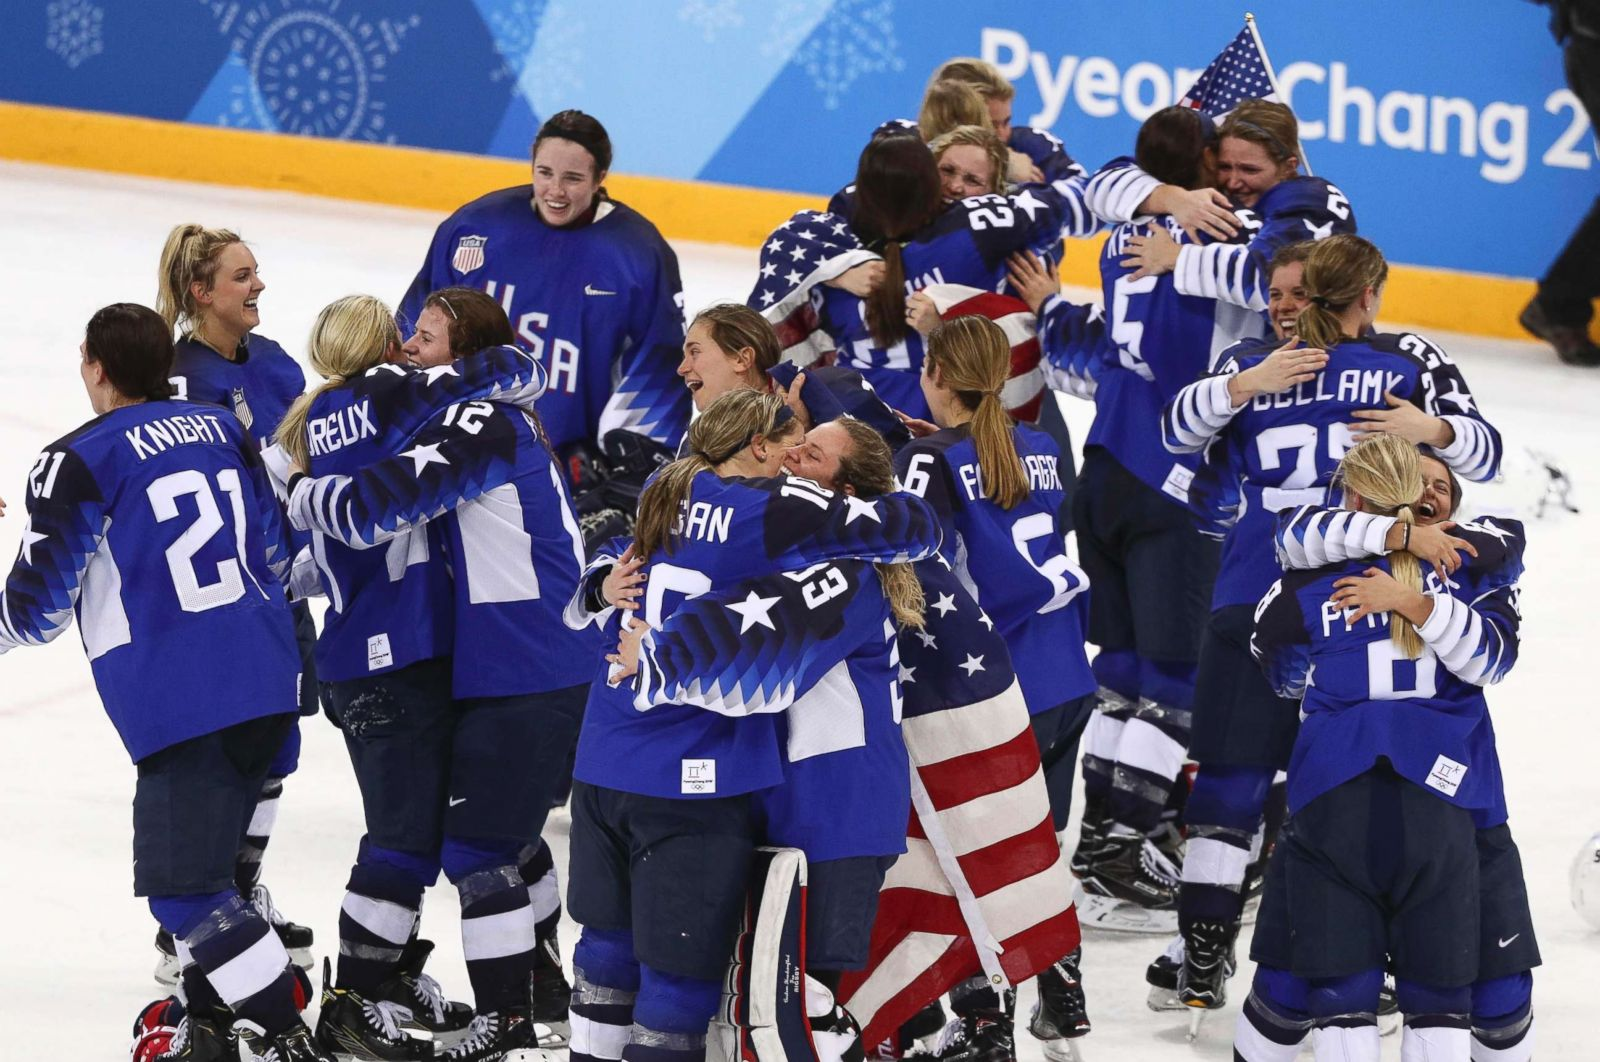 42ecfe03a74 US women s hockey team finally gets gold in dramatic final against rival  Canada - ABC News